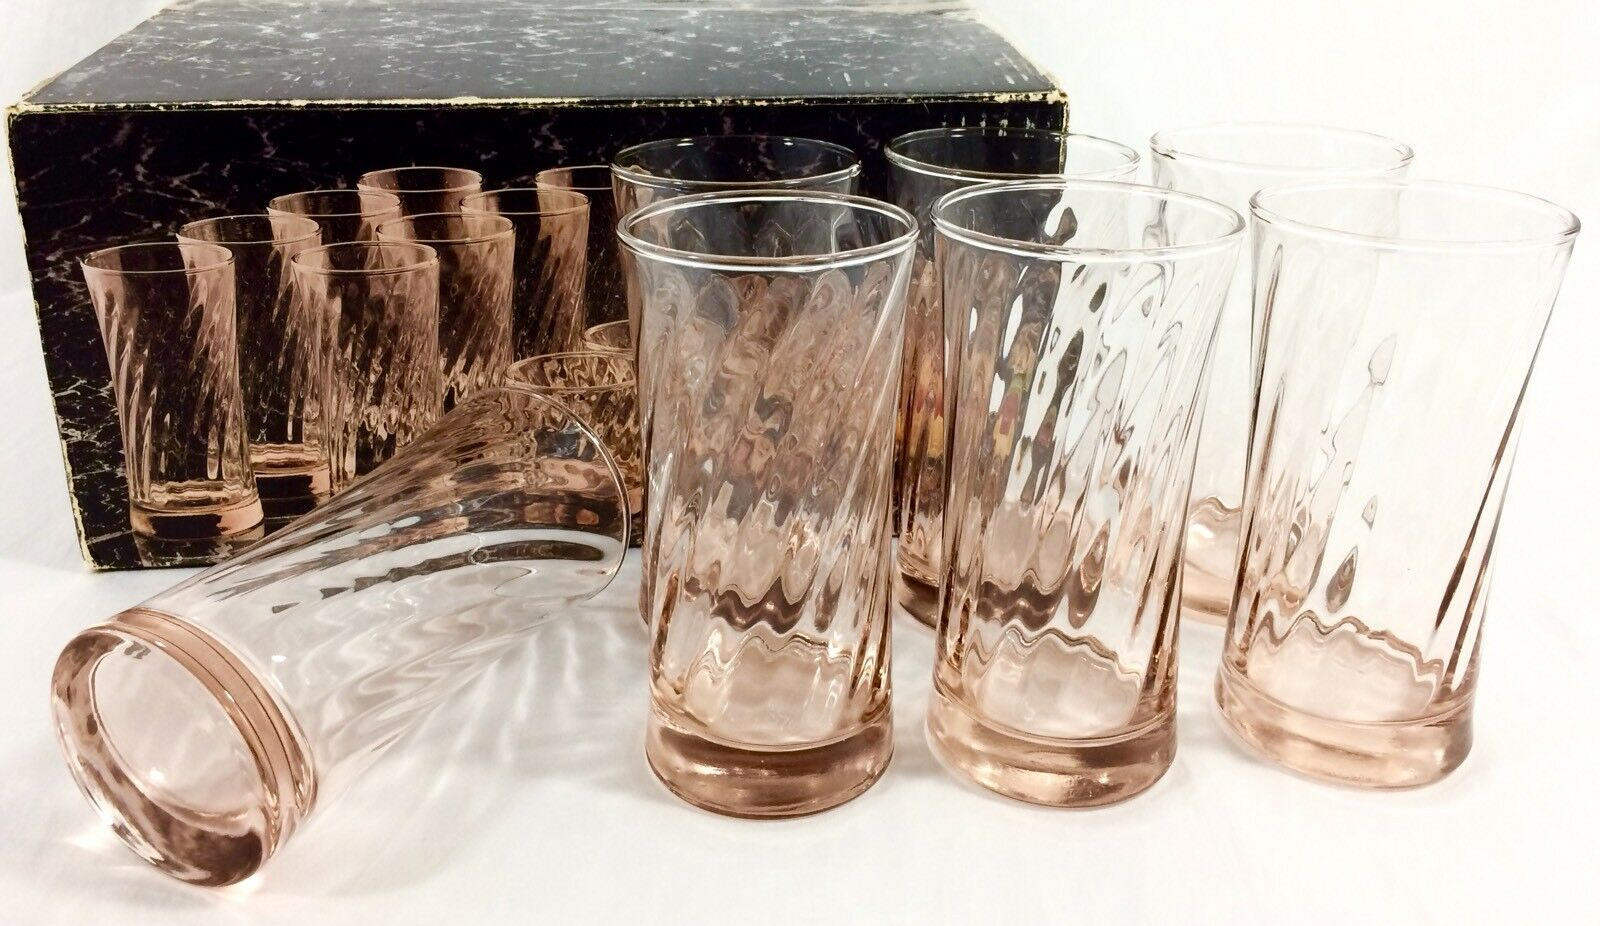 7 le Toscany Collection Sierra rose optic Swirl verre 17 oz (environ 481.93 g) gobelets vintage USA Difficile à trouver